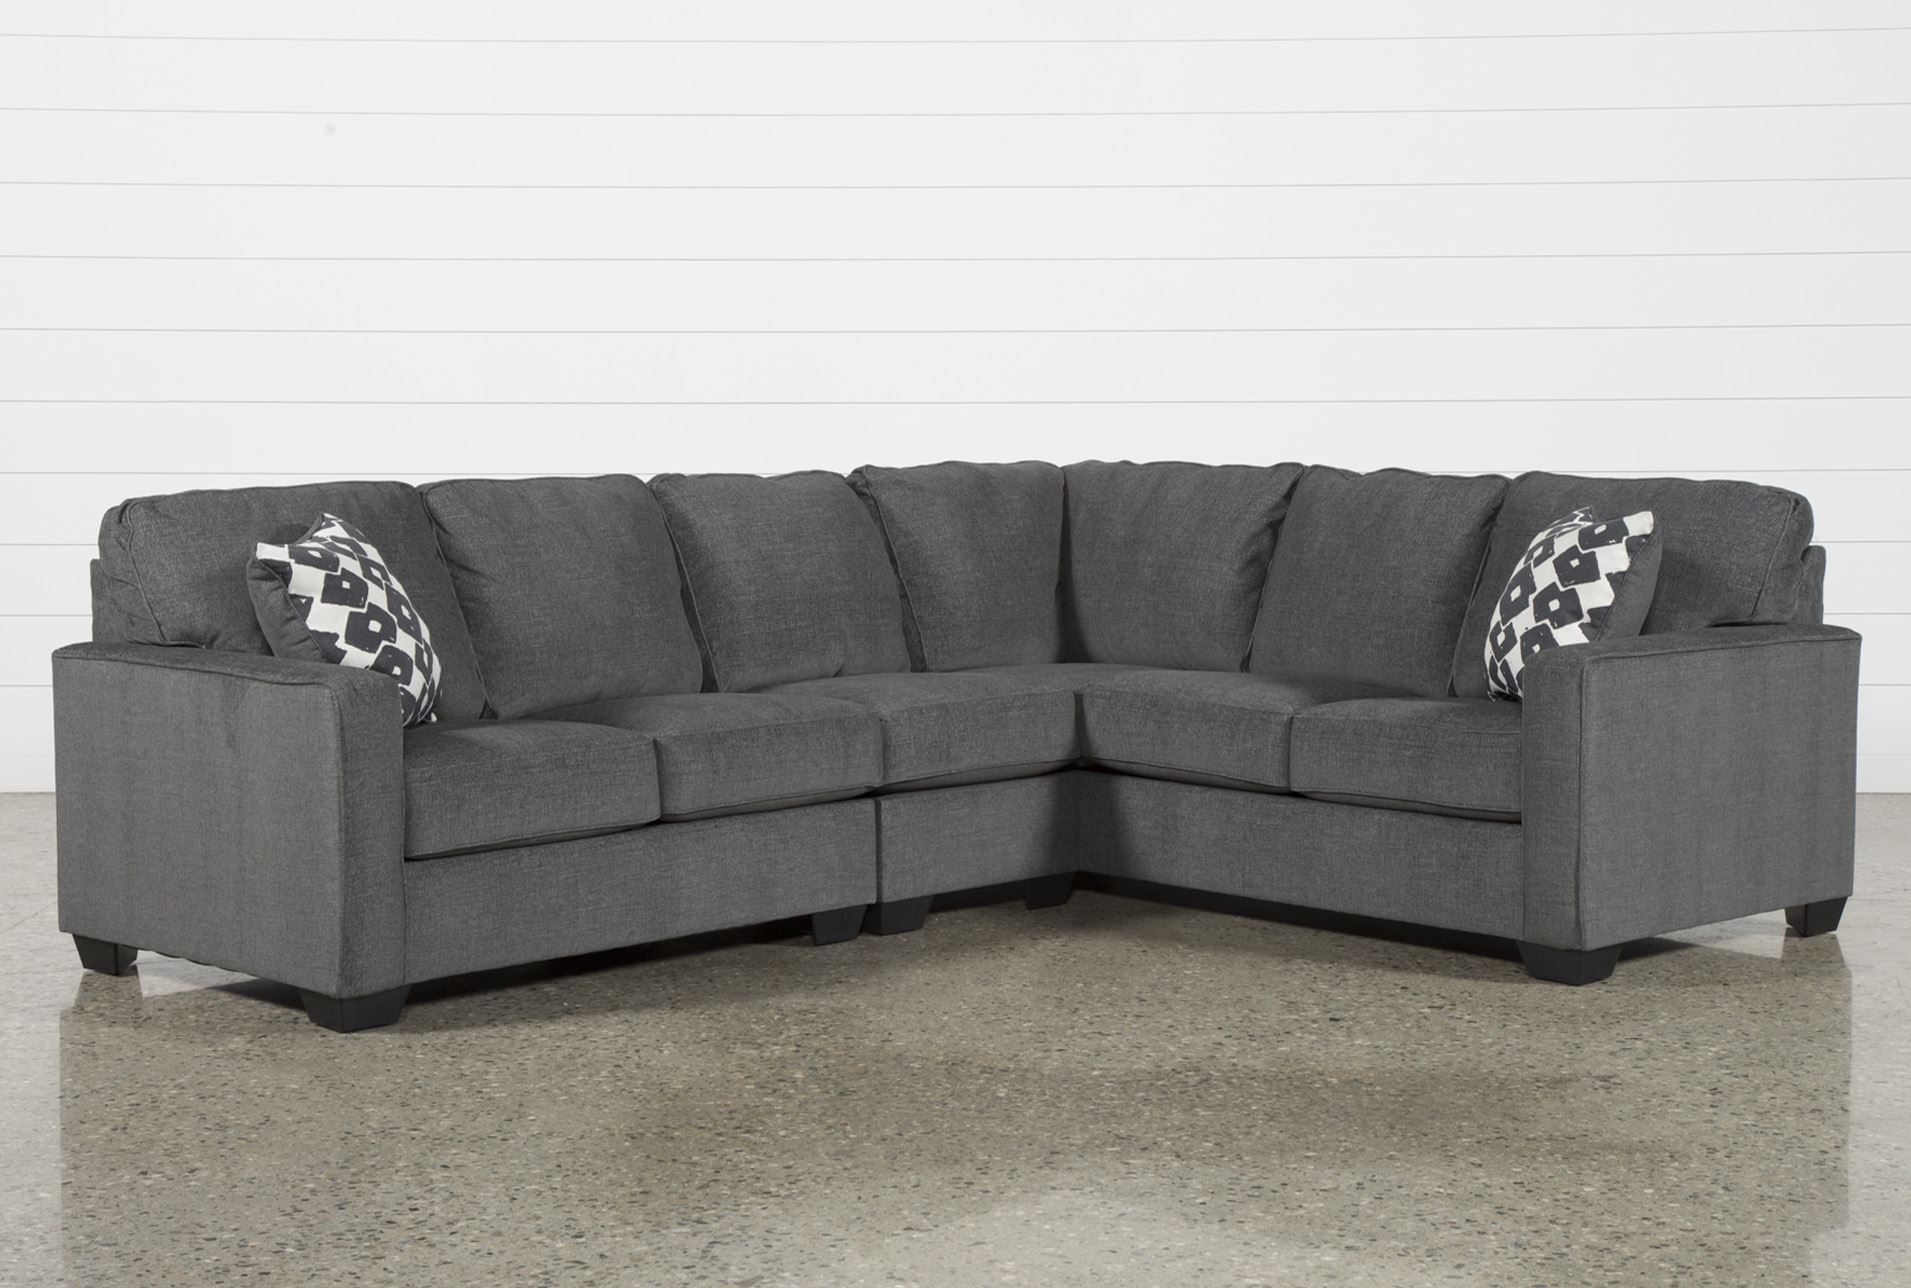 Turdur 3 Piece Sectional W/laf Loveseat | Furniture/wayfaire | Pinterest for Karen 3 Piece Sectionals (Image 29 of 30)